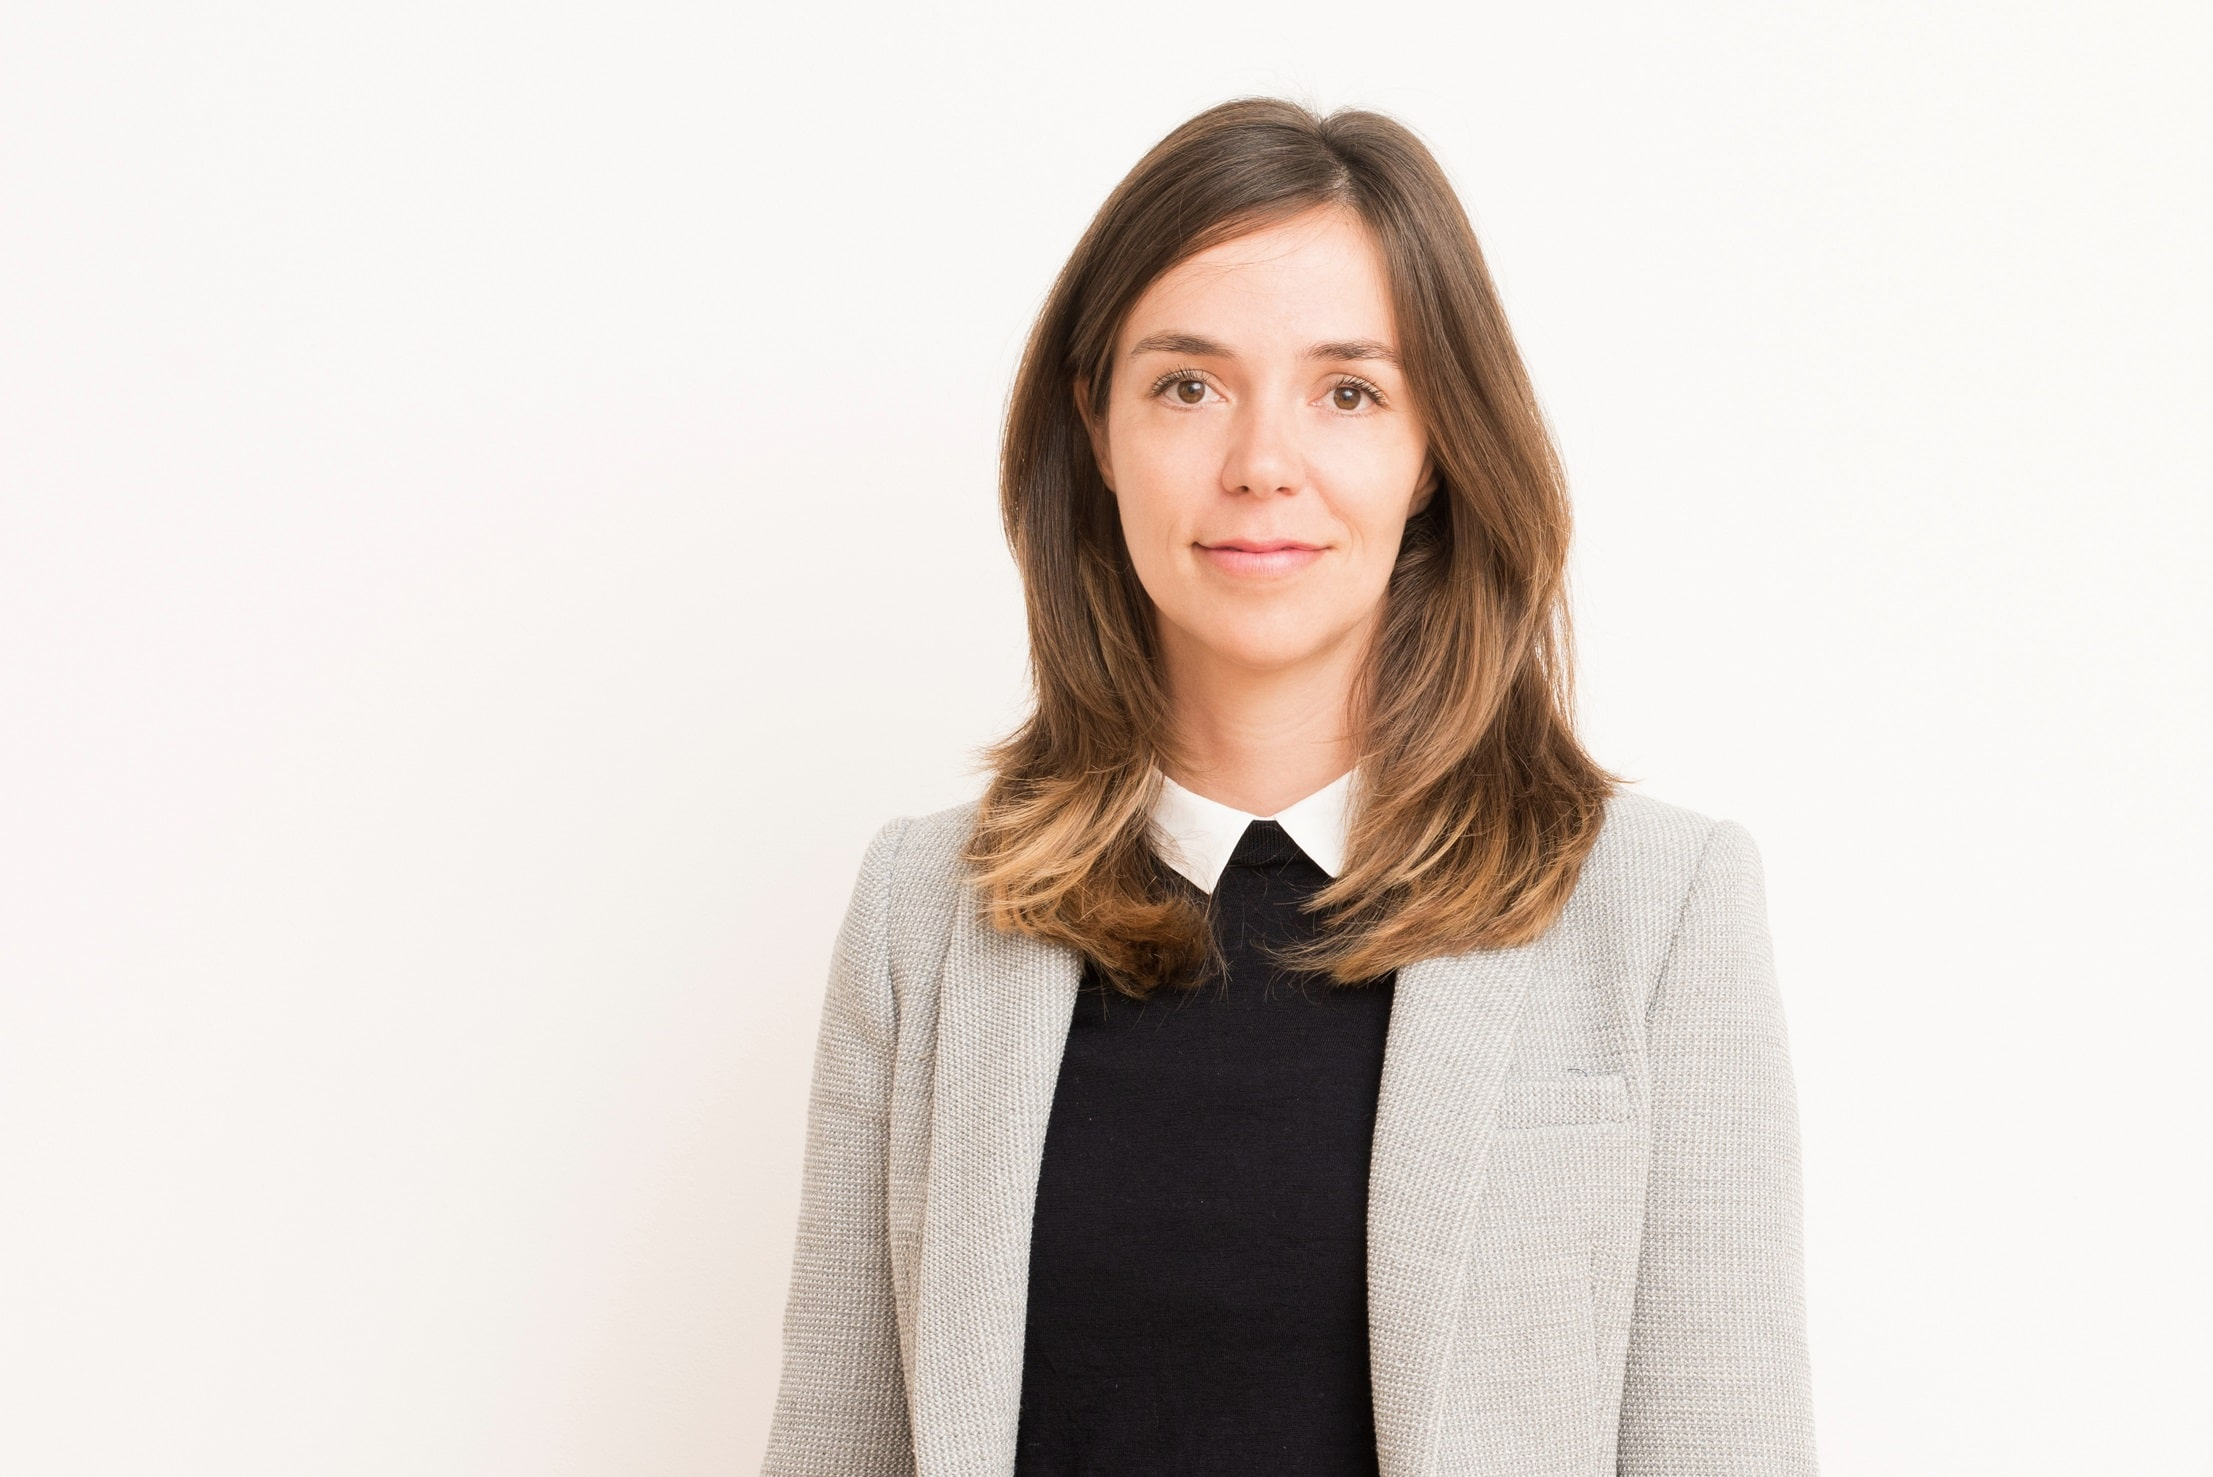 10 questions for Marketing Manager Liselotte Pichler Kager (Mila)